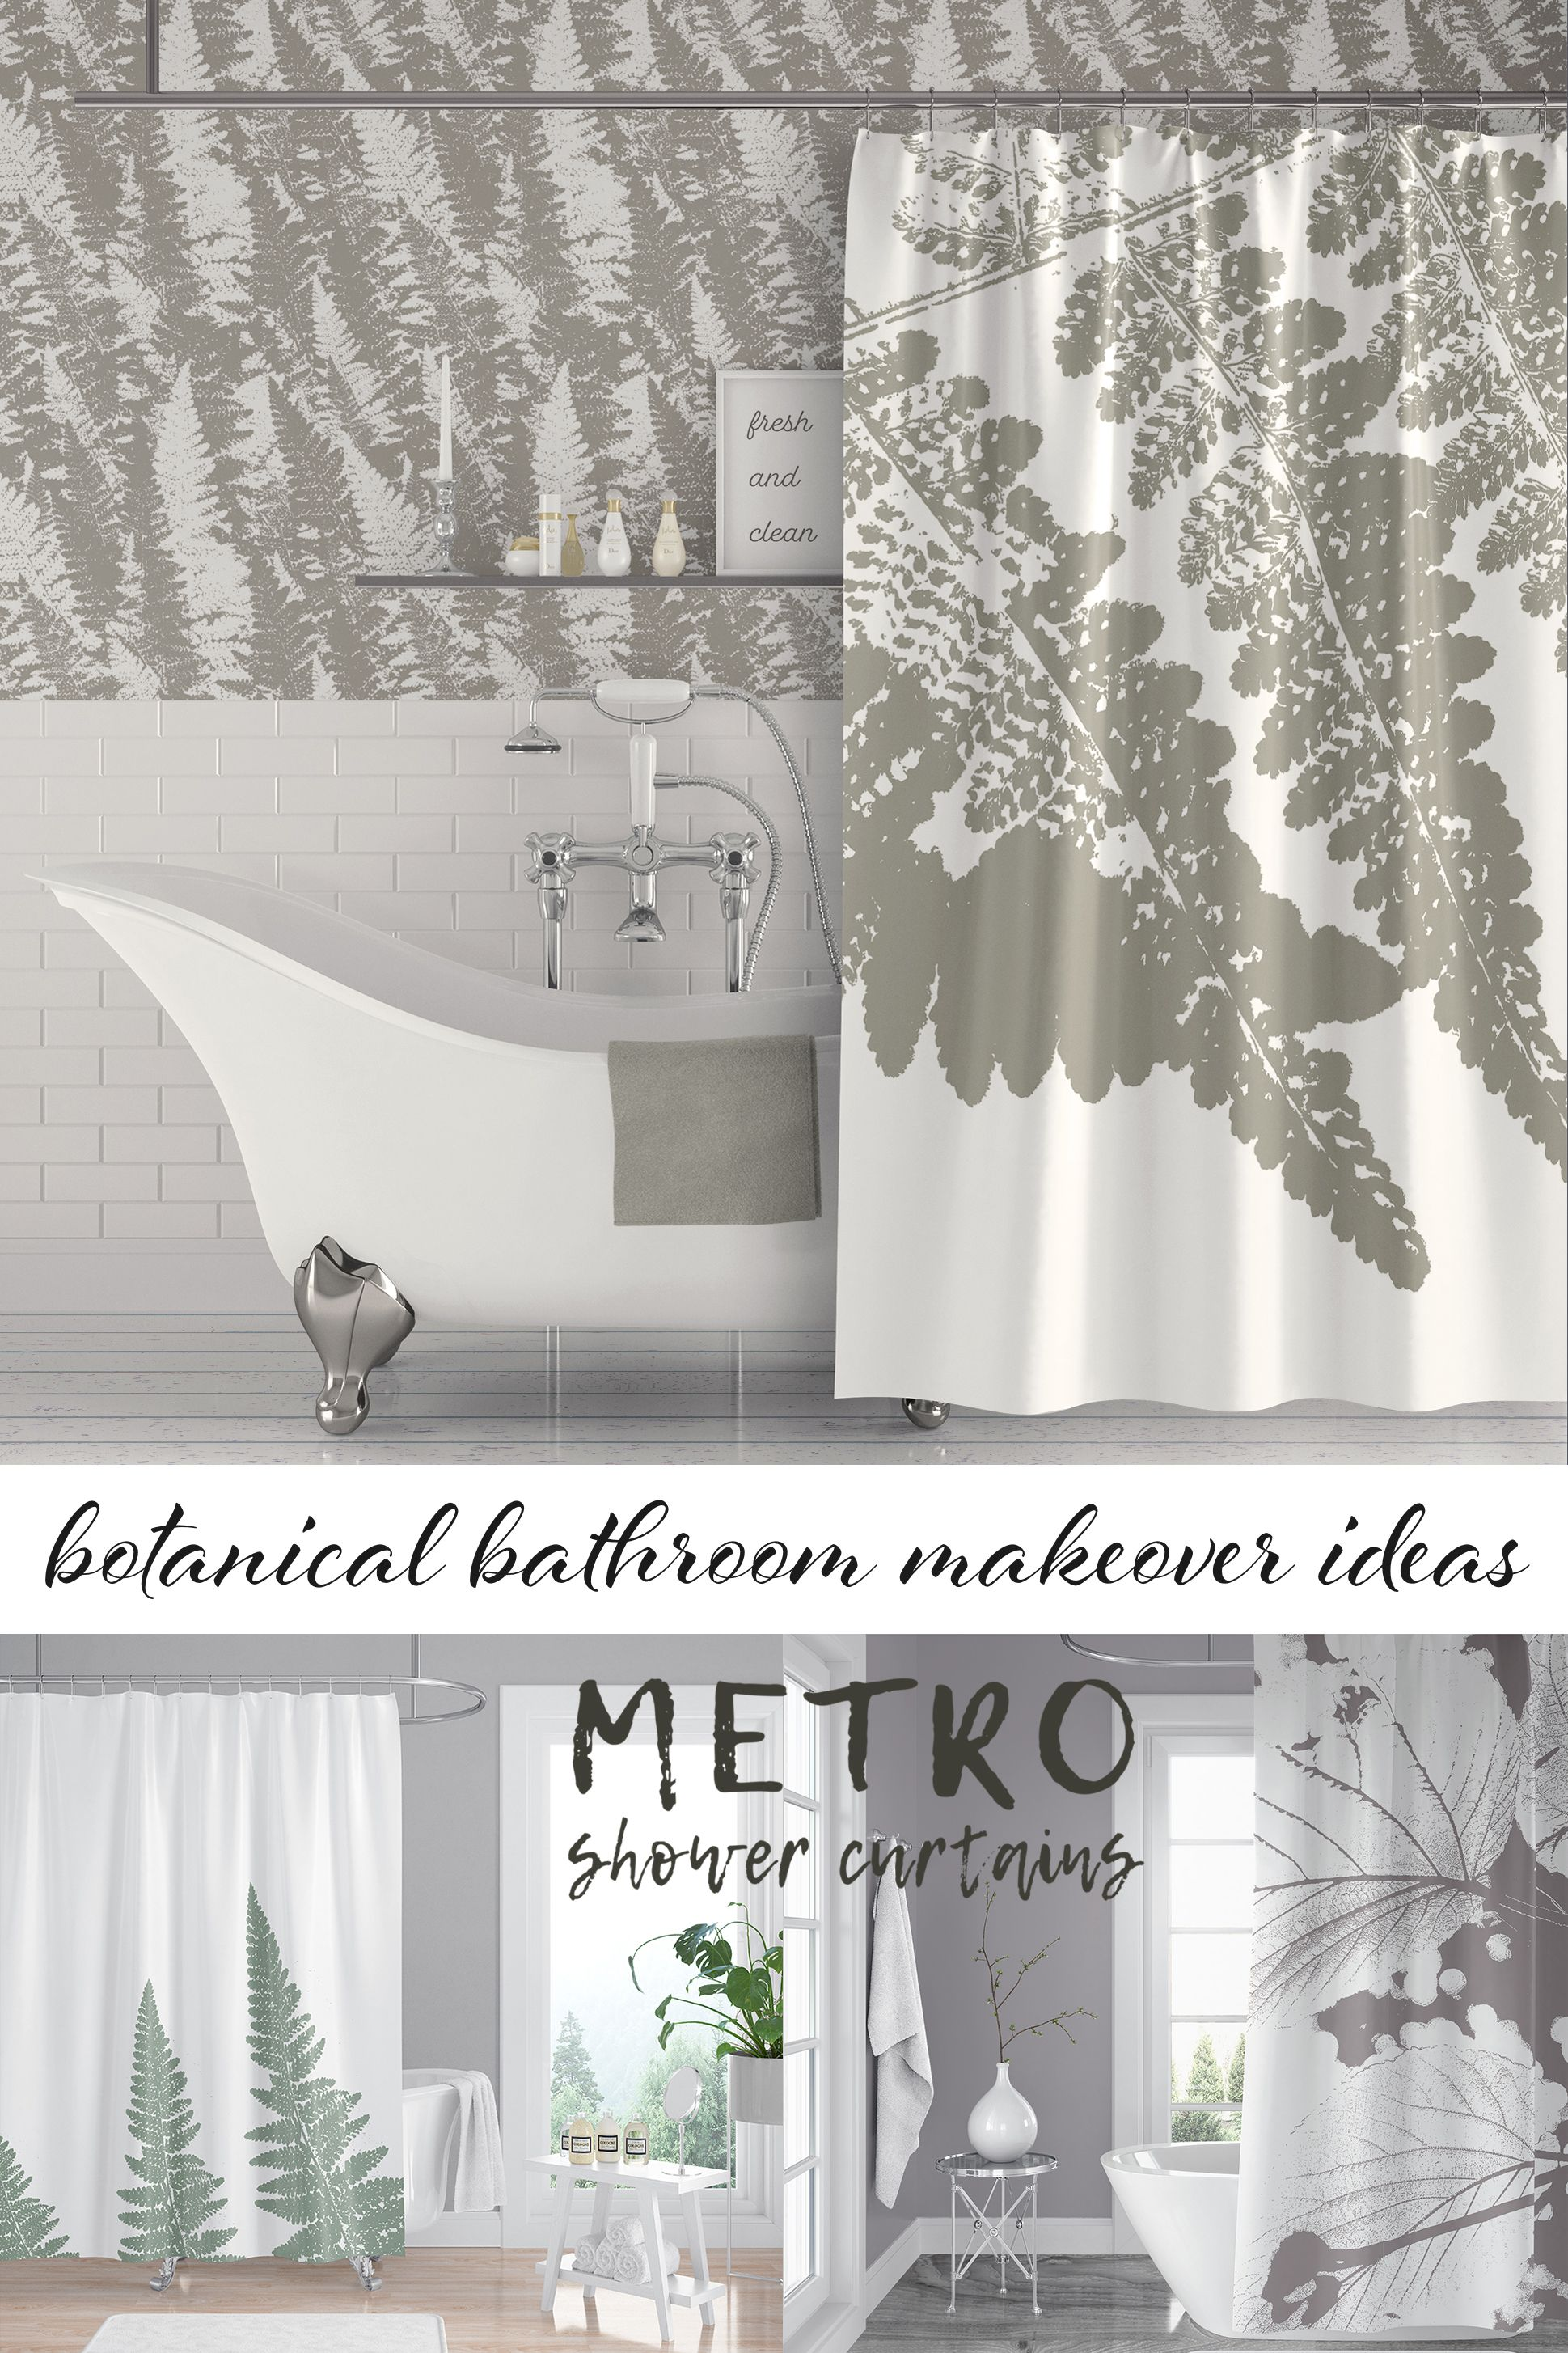 Love These Gray And White Bathroom Ideas Ferns Shower Curtains Beautiful Art Prints Want Small Bathroom Decor Botanical Bathroom Bathroom Makeover